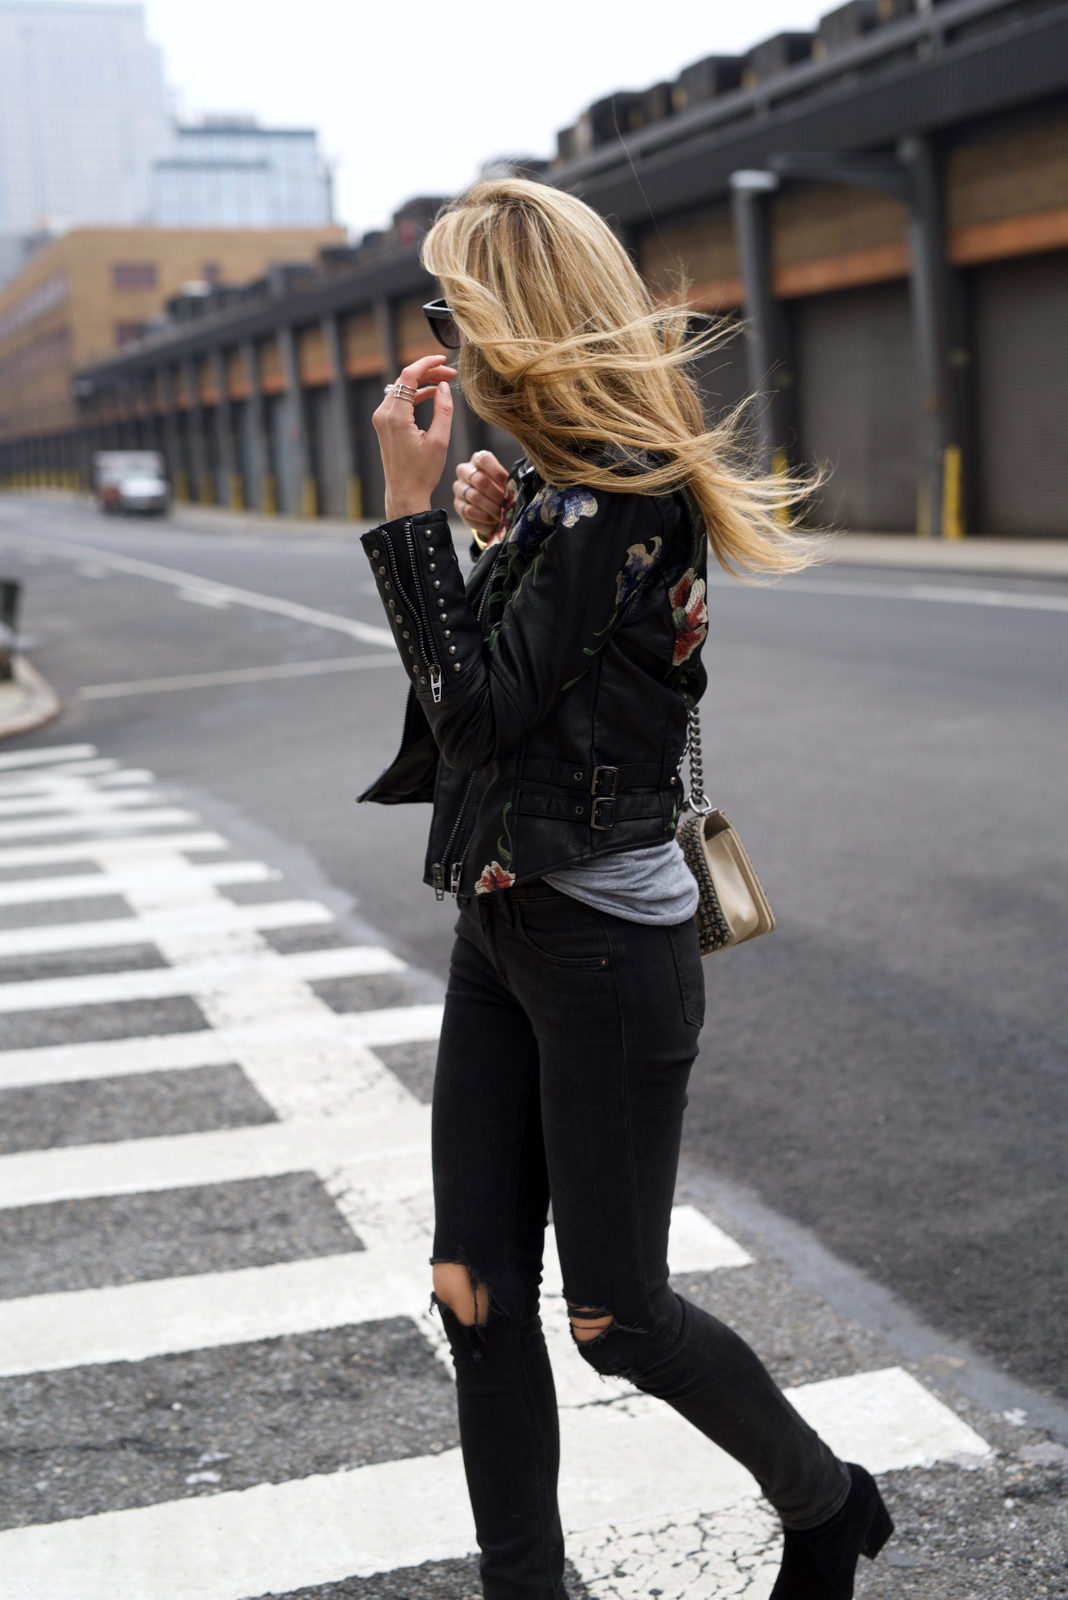 Floral Leather Jacket, Spring trends, Cool Girl outfit, Chanel boy bag, BlankNYC, Moto leather jacket